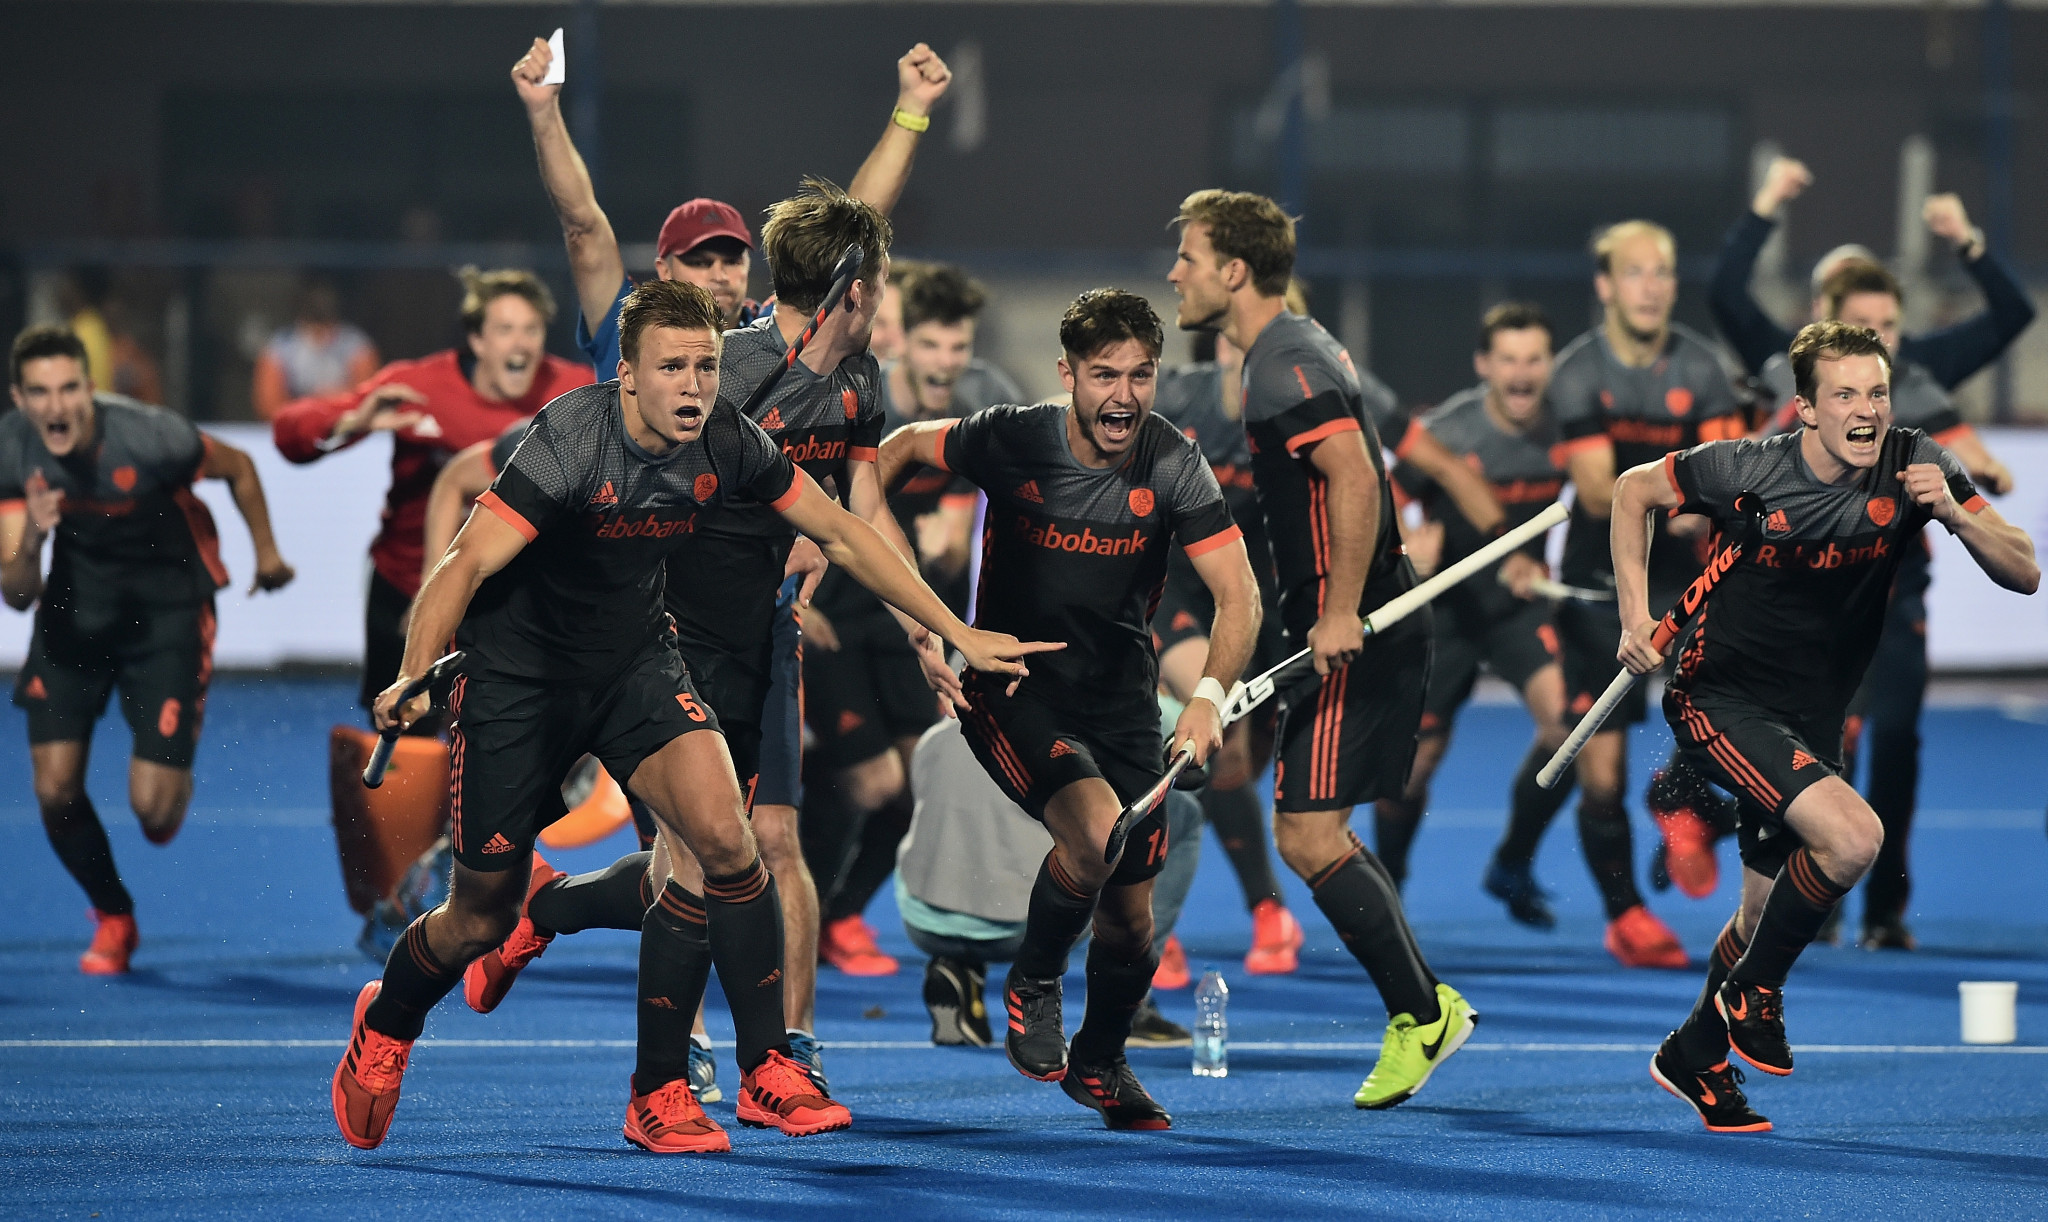 Belgium and The Netherlands to fight for gold at FIH Men's Hockey World Cup after contrasting last four clashes